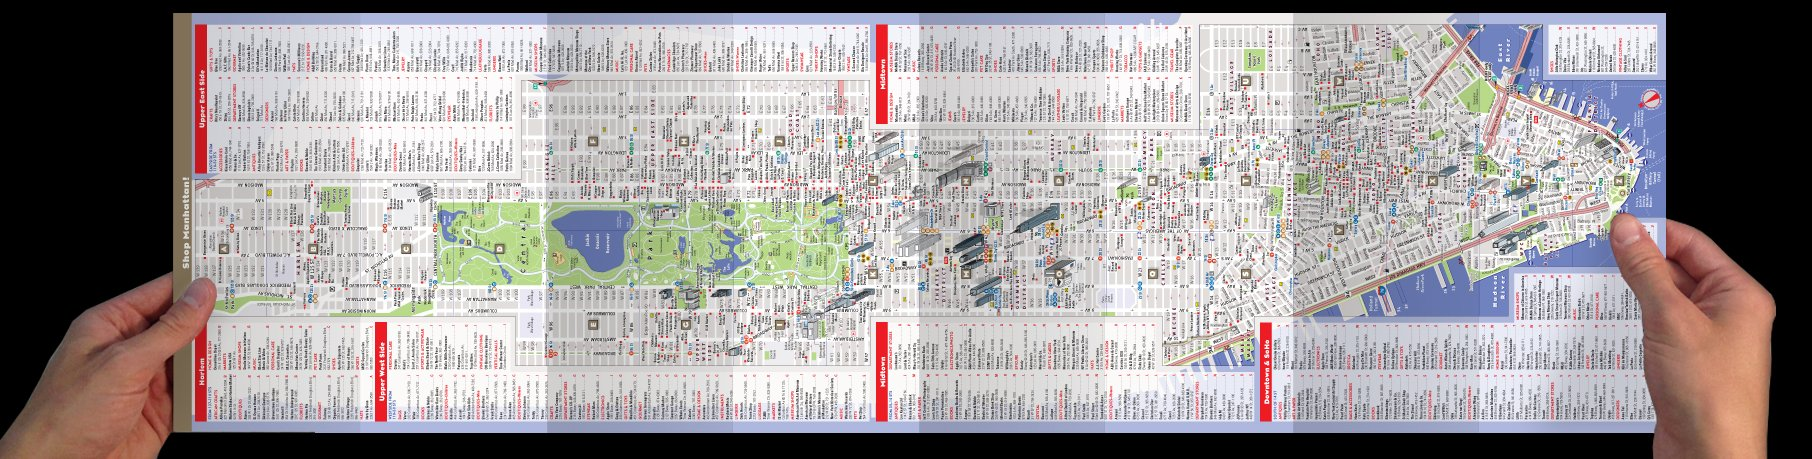 StreetSmart NYC Map By VanDam Top City Shops Map Of Manhattan - Nyc unfolds map